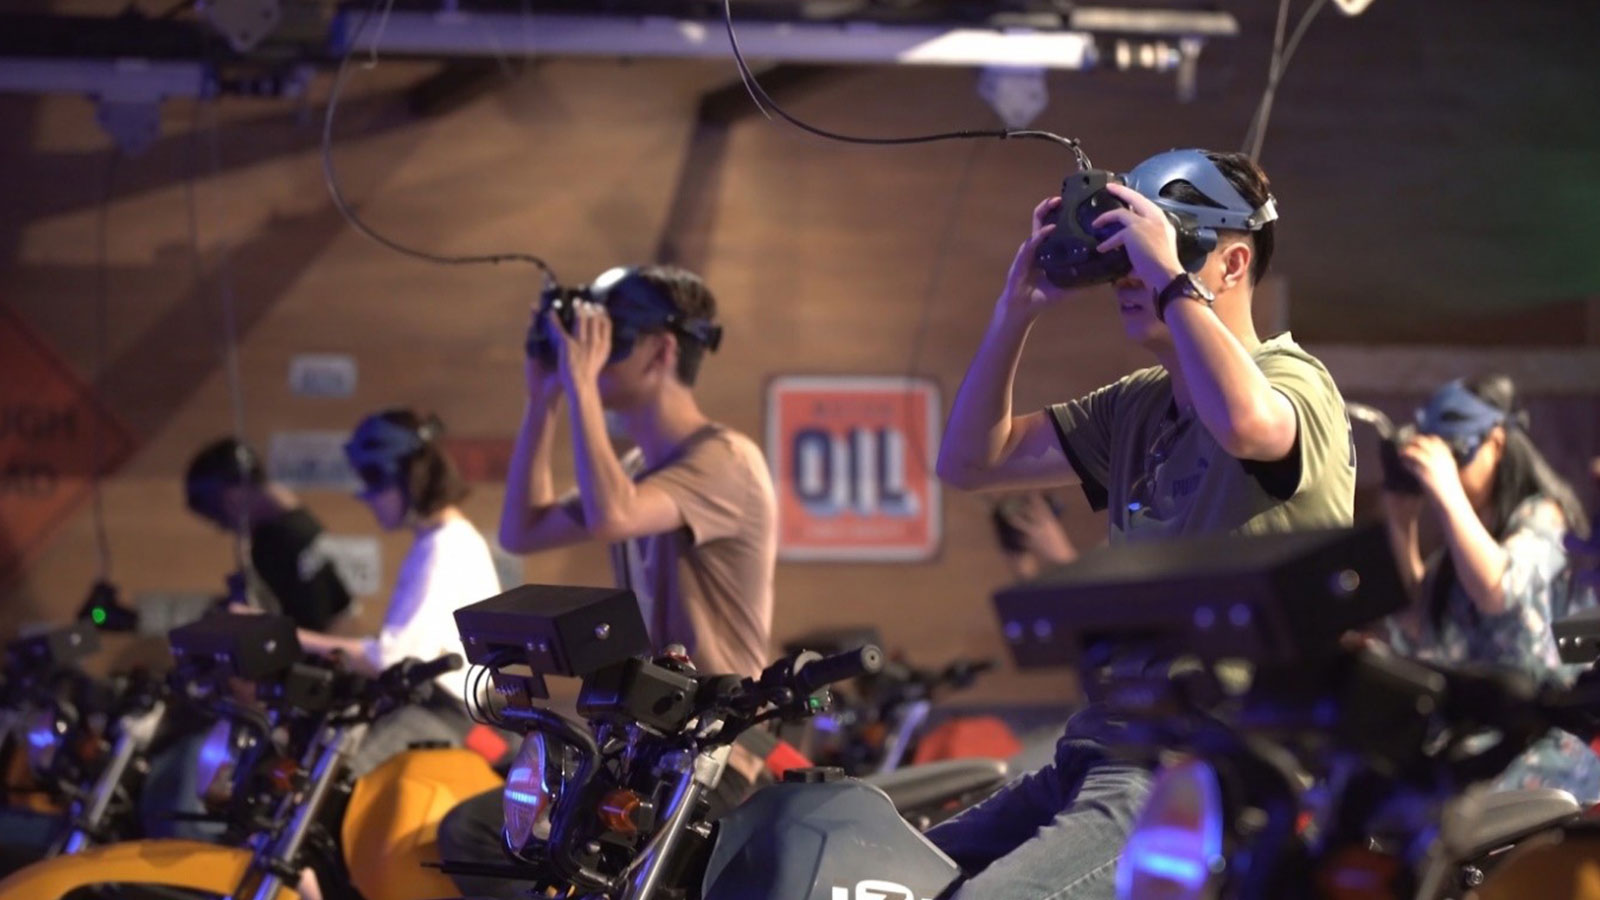 People on motorcylces with VR headsets with Ultraleap tracking technology